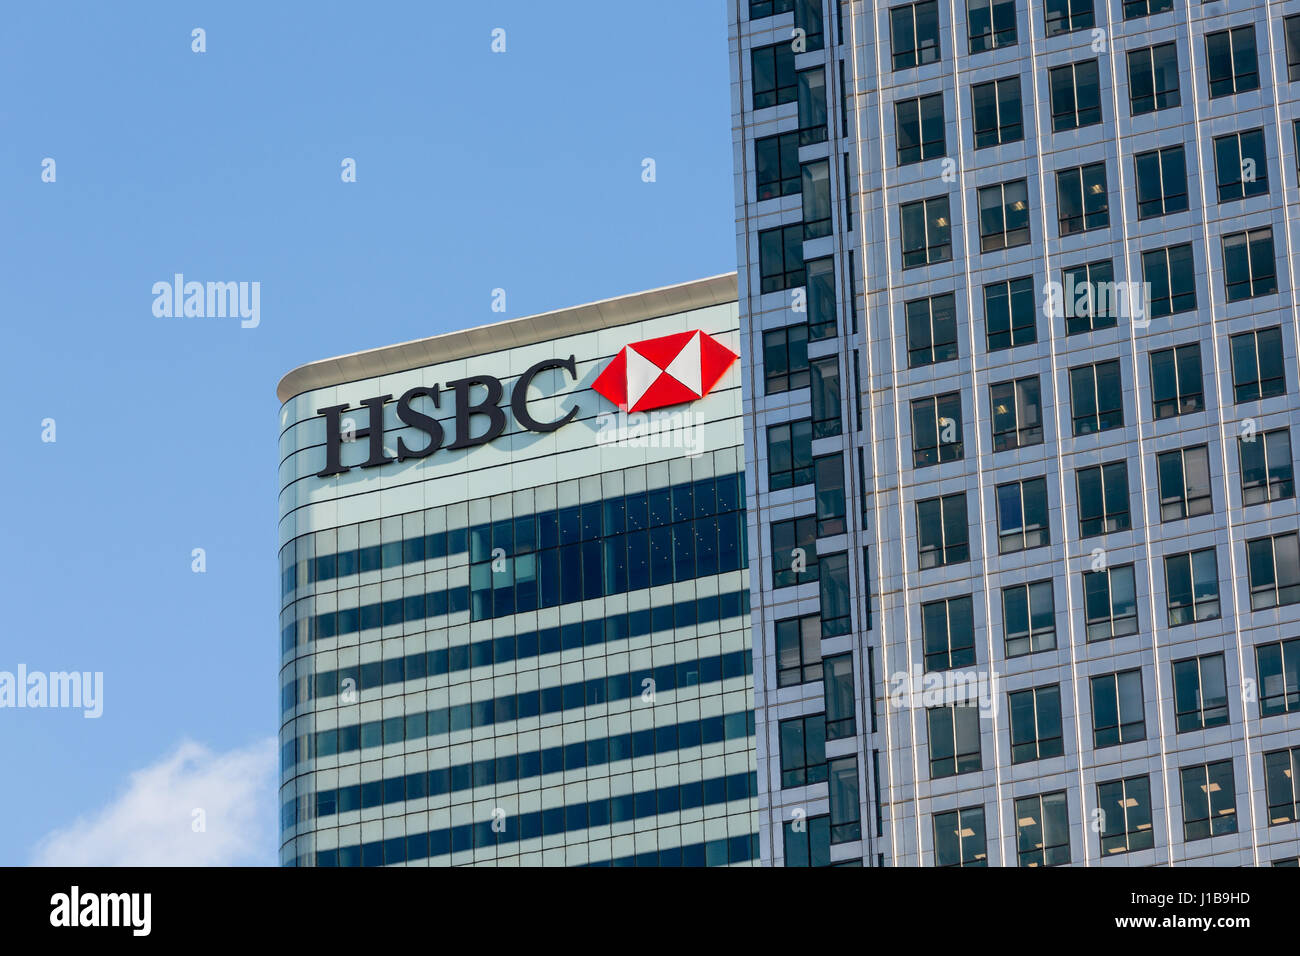 HSBC bank logo sign on the HSBC HQ office building in Canary